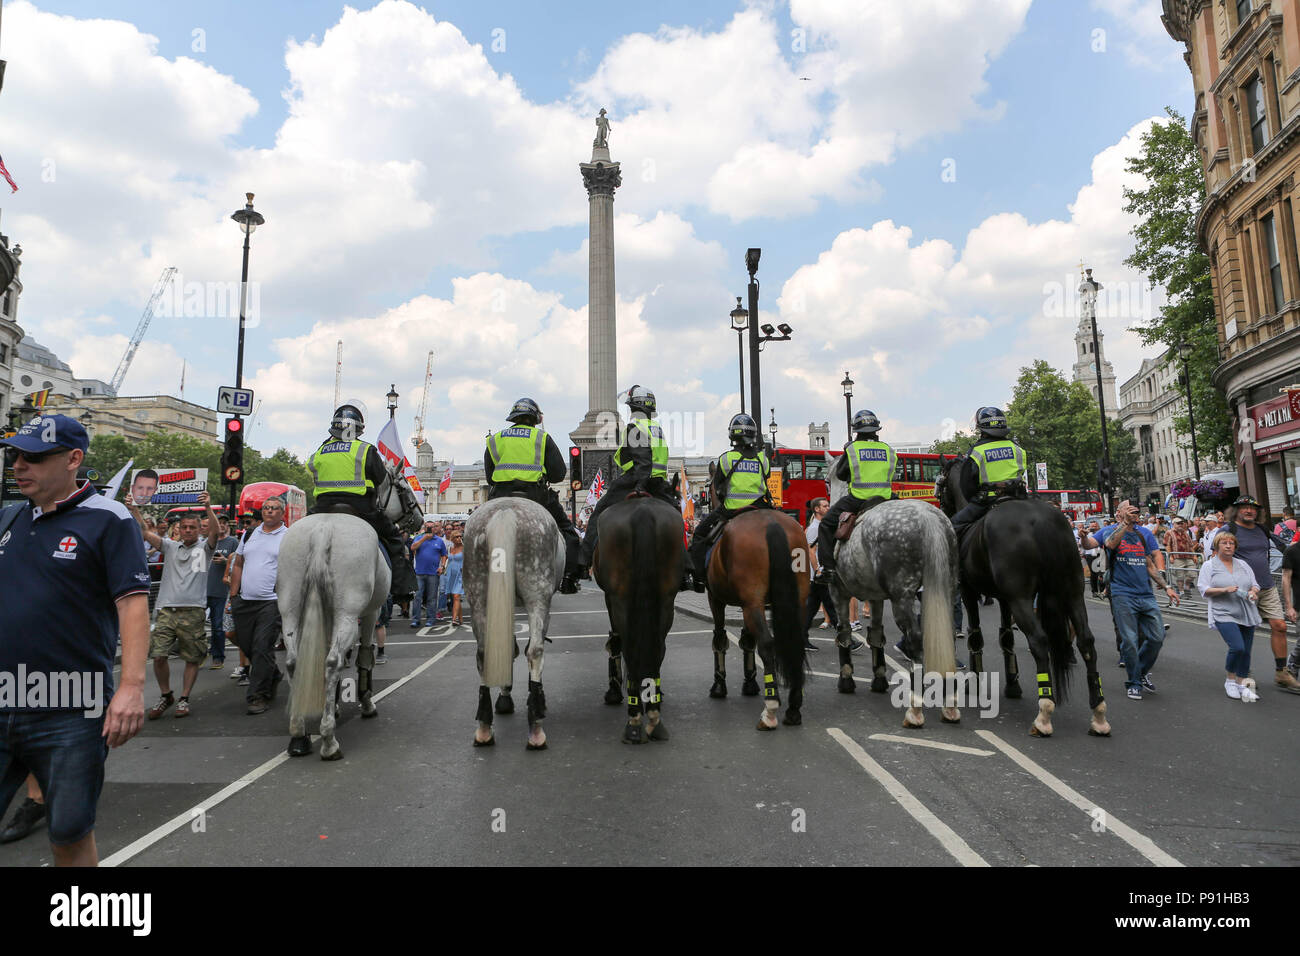 London, UK, 14th July, 2018. Various right wing groups hold a demonstration for former EDL leader Tommy Robinson, who is currently serving a 10 month prison sentence for contempt of court. Penelope Barritt/Alamy Live News - Stock Image